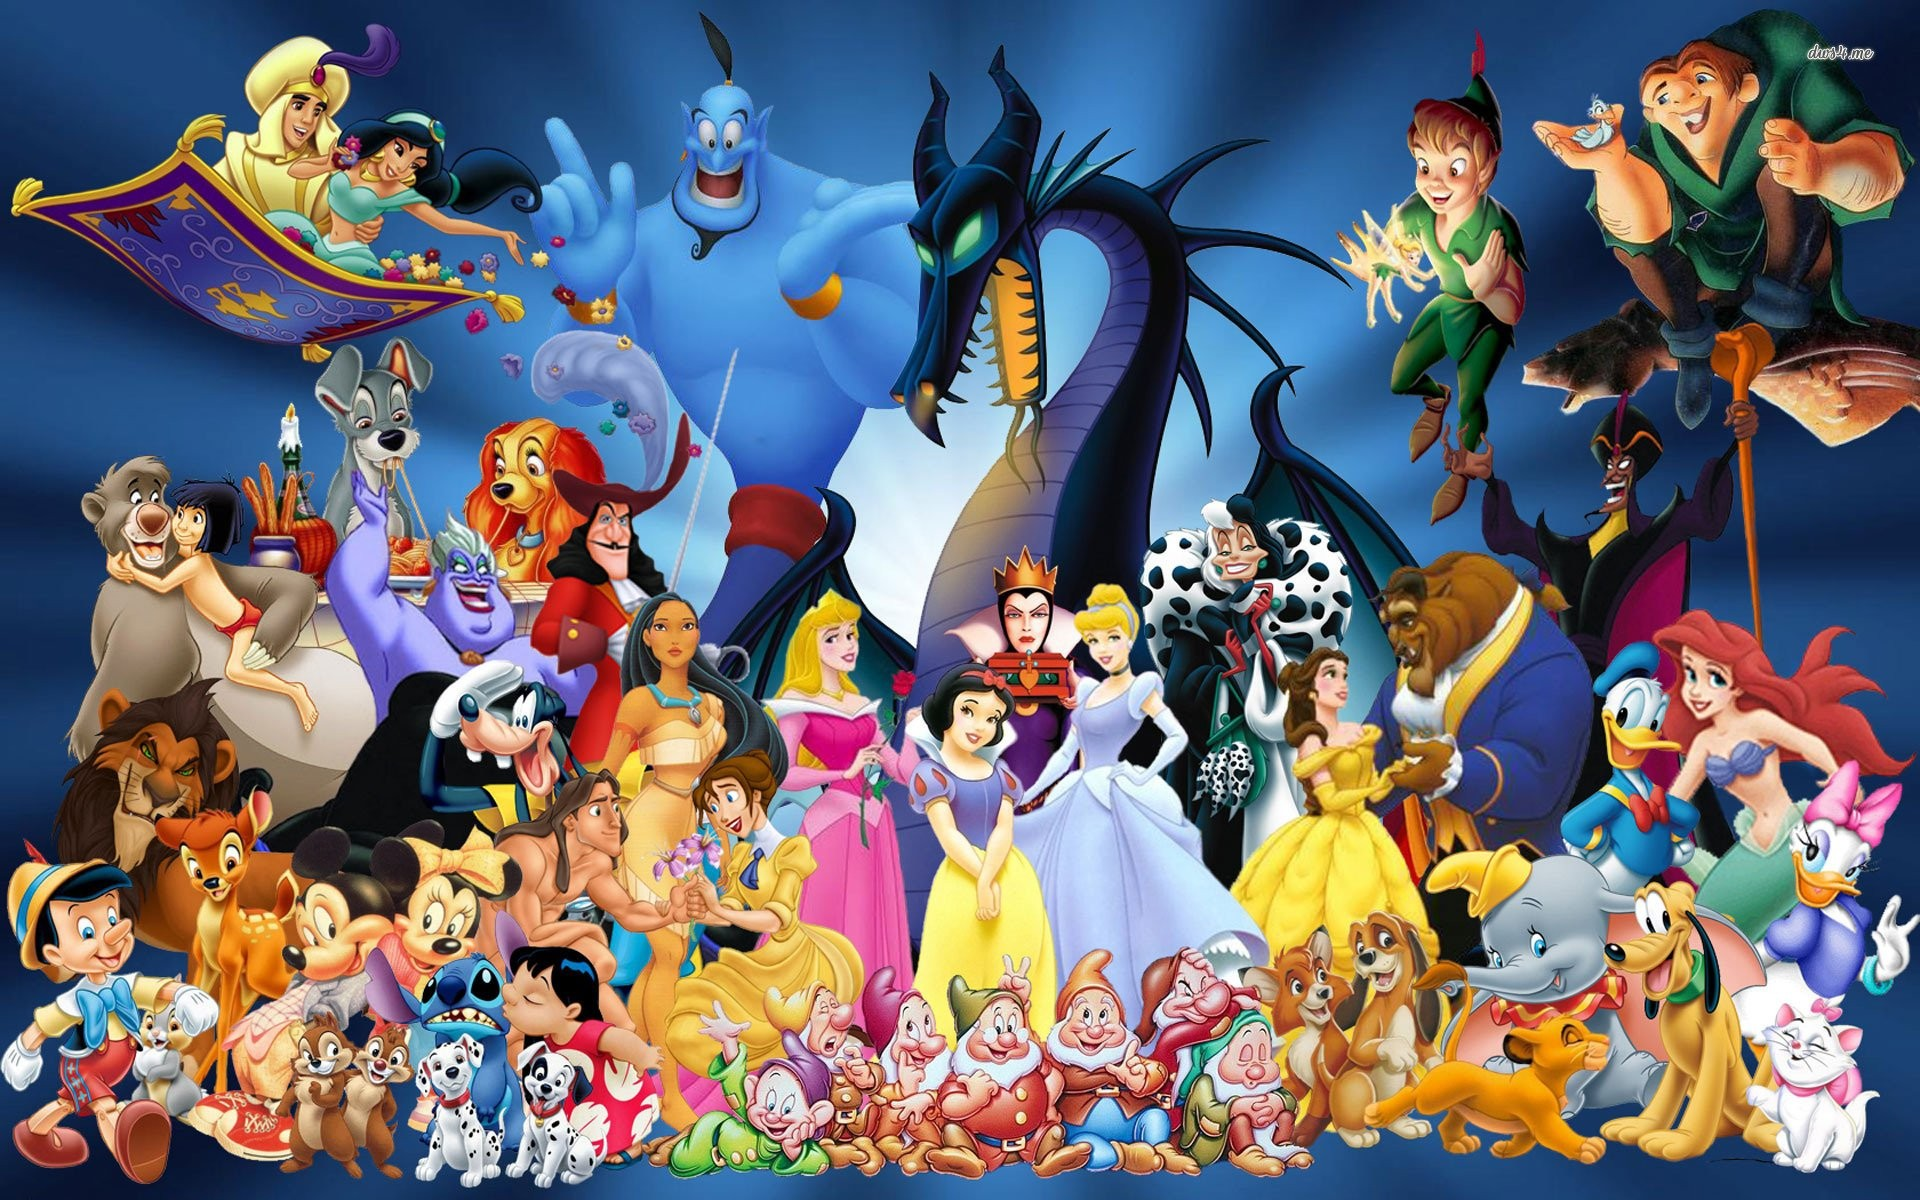 Disney wallpaper ·â' Download free stunning HD wallpapers for